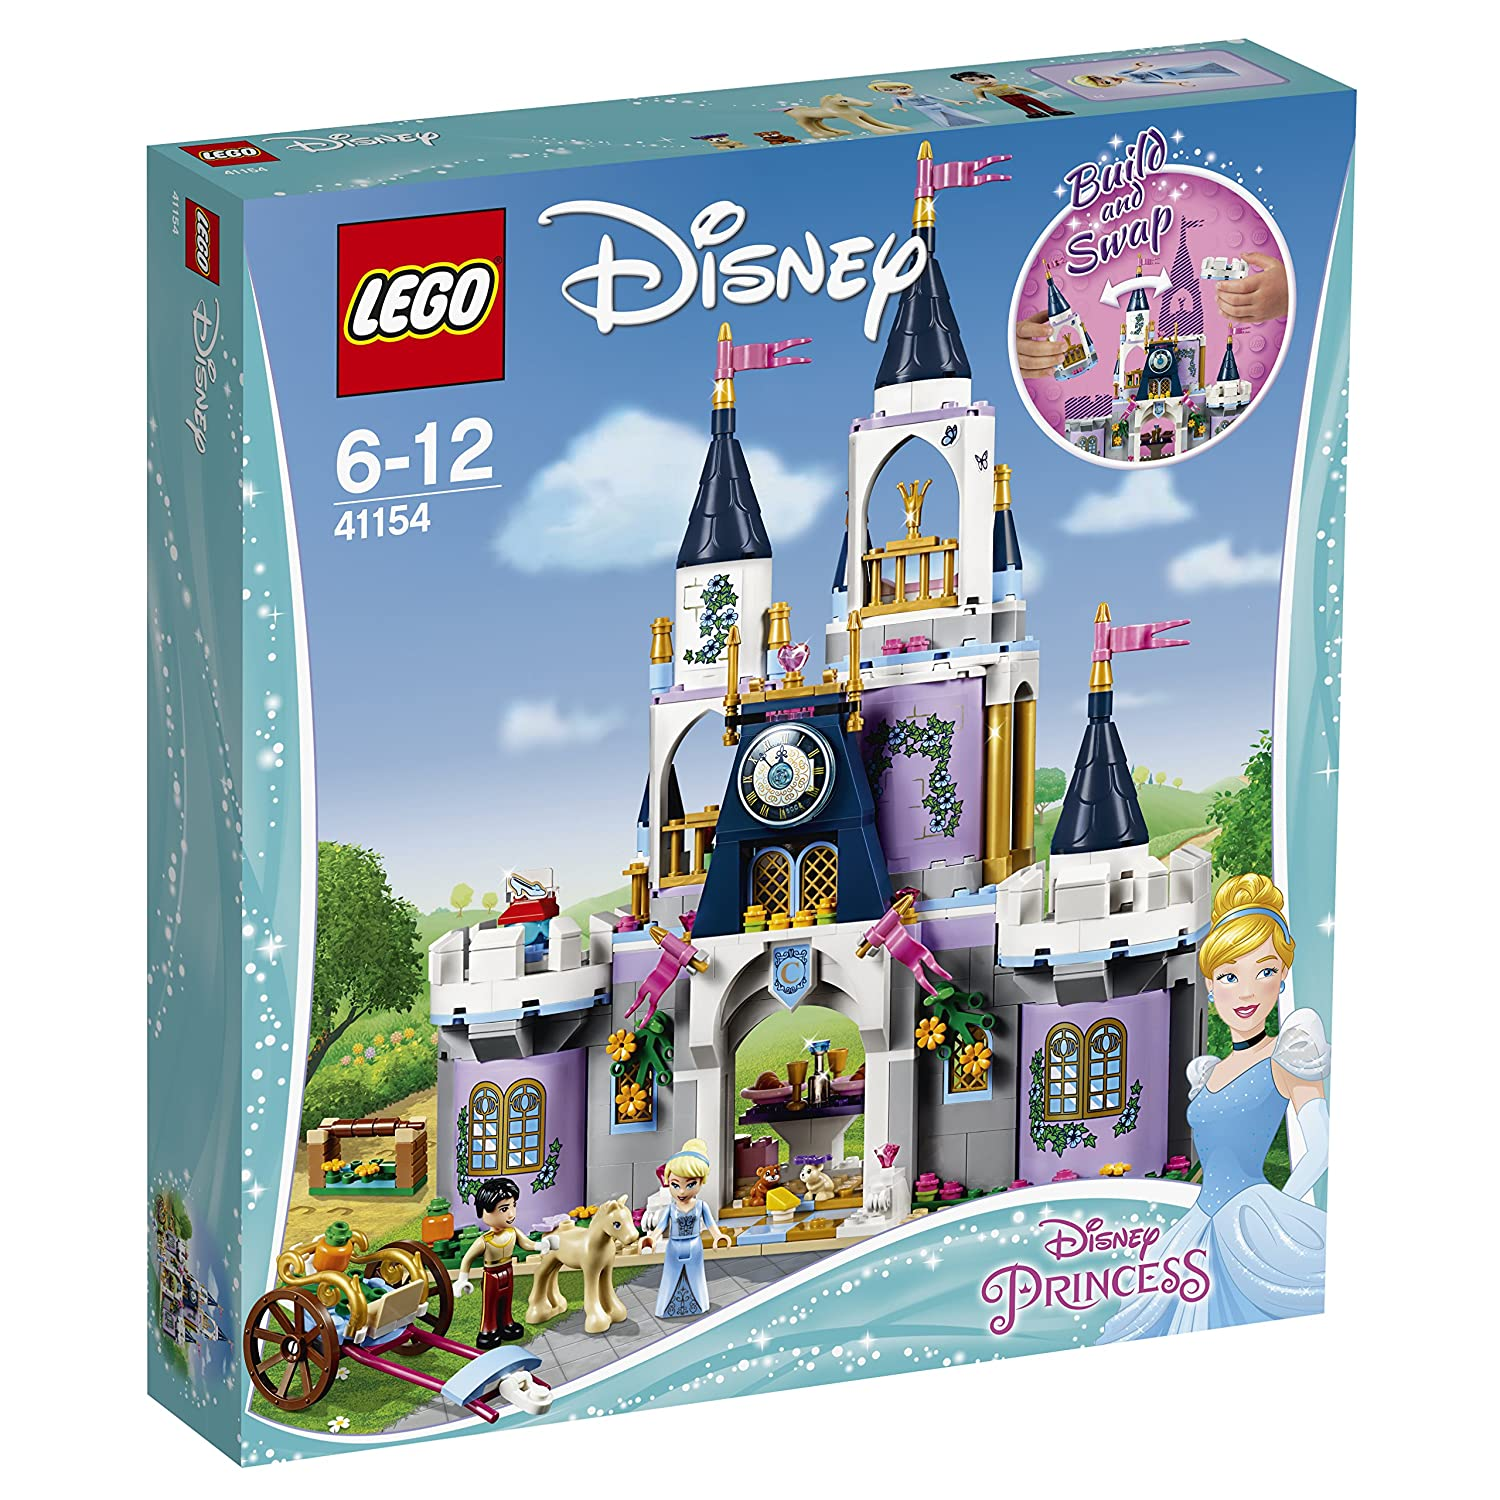 LEGO 41154 Disney Princess Cinderella/'s Dream Castle Toy Prince and Cinderella Figures Building Set for Kids